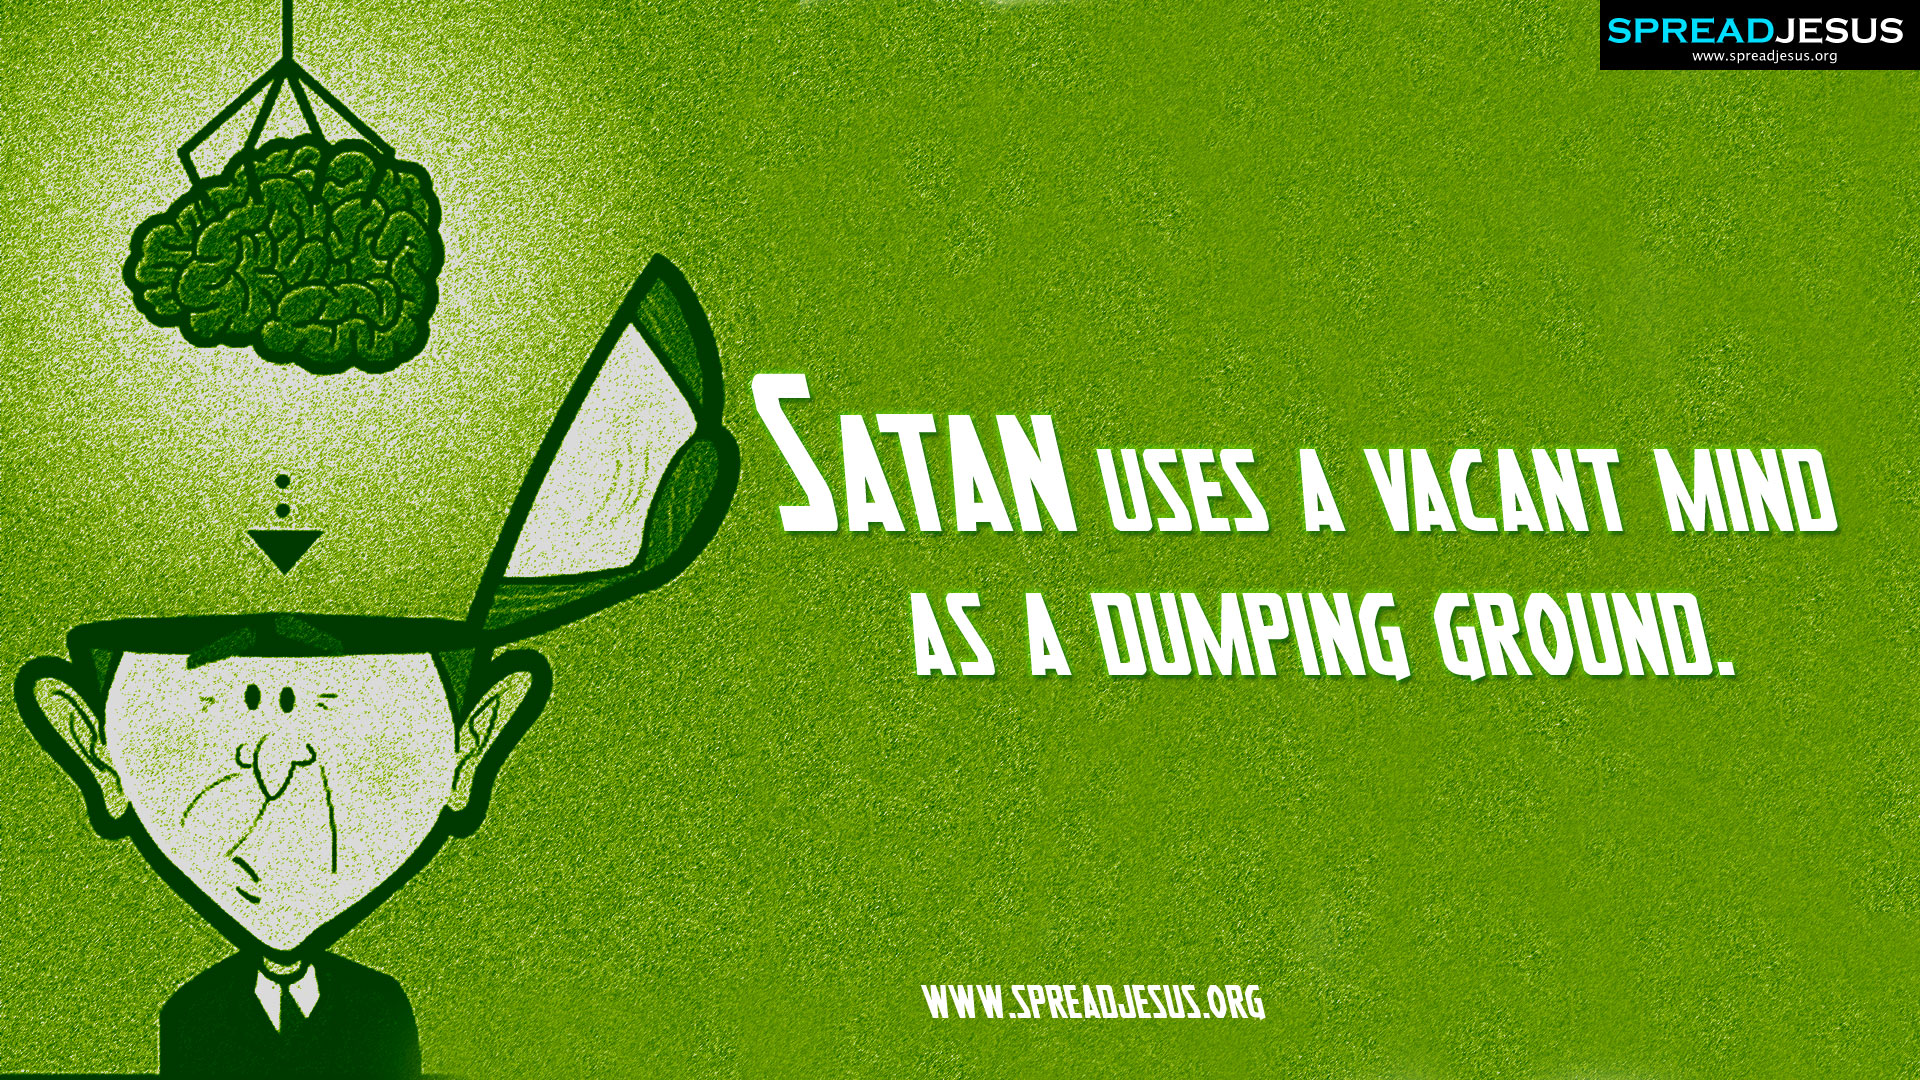 Christian Quotes HD-Wallpaper Satan uses a vacant mind as a dumping ground-spreadjesus.org